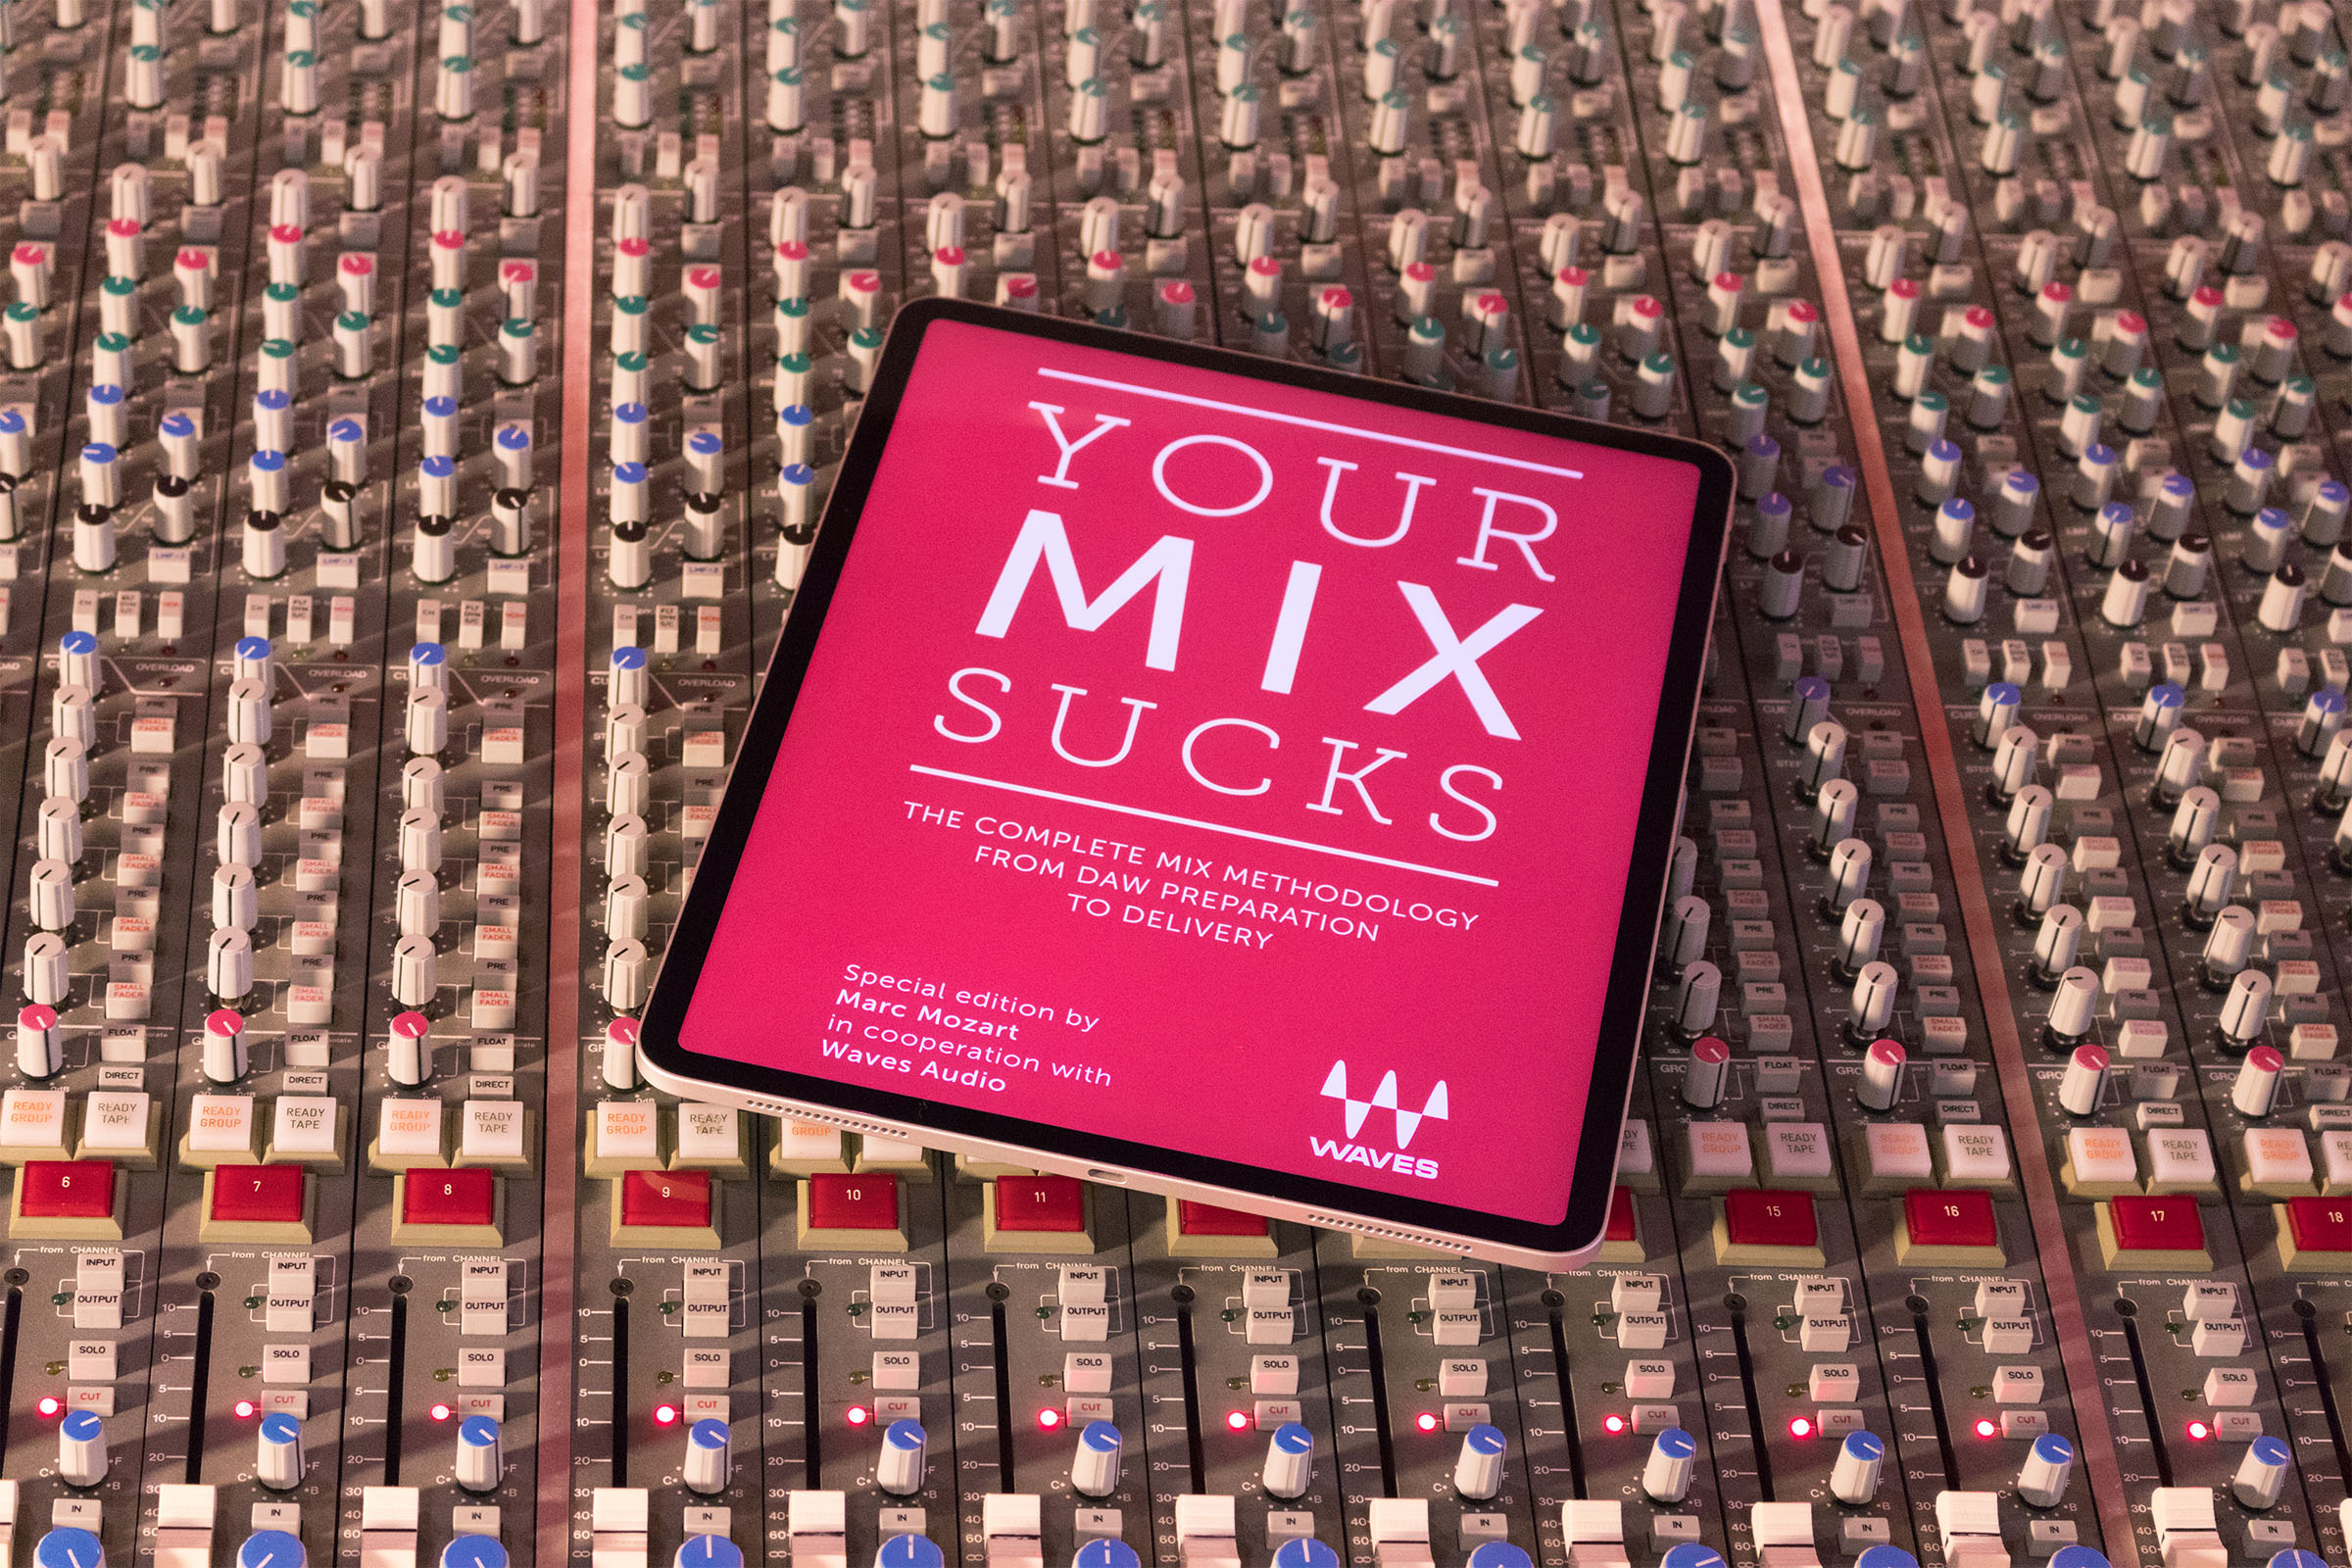 Your Mix Sucks Waves Edition - Everything Recording